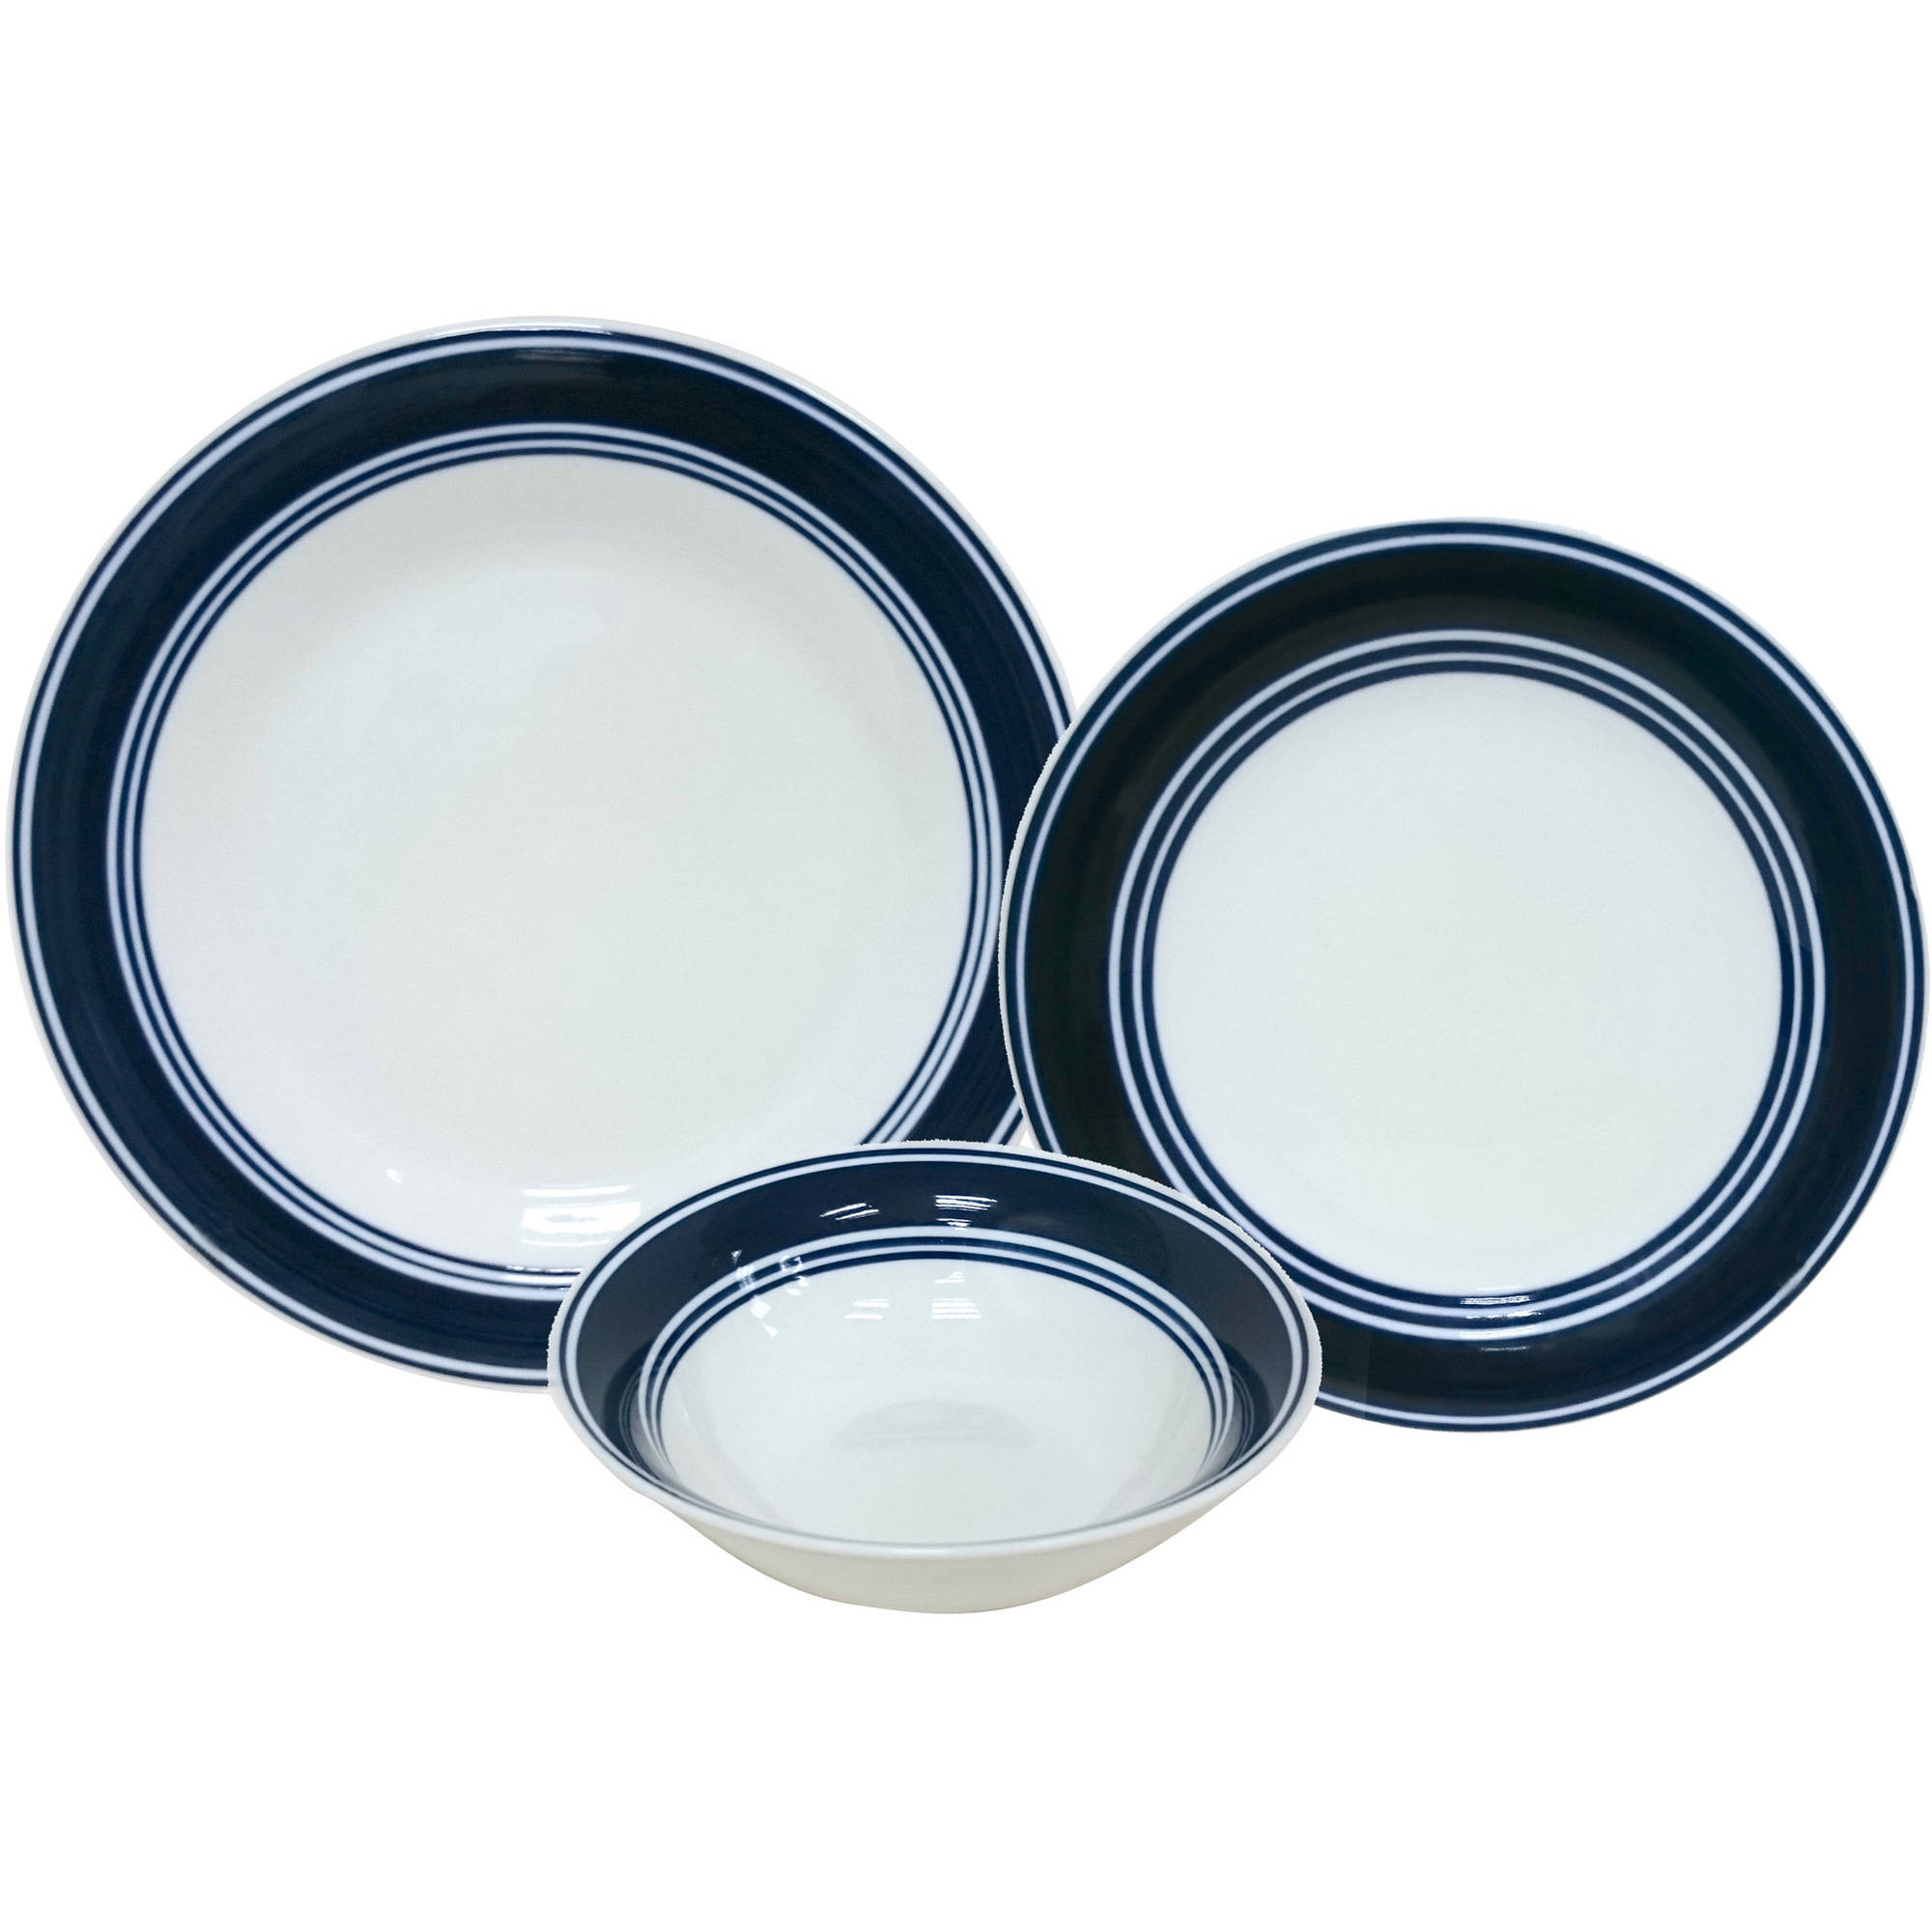 Mainstays Blue Banded 12-Piece Stoneware Dinnerware Set  sc 1 st  Walmart & Mainstays Blue Banded 12-Piece Stoneware Dinnerware Set - Walmart.com